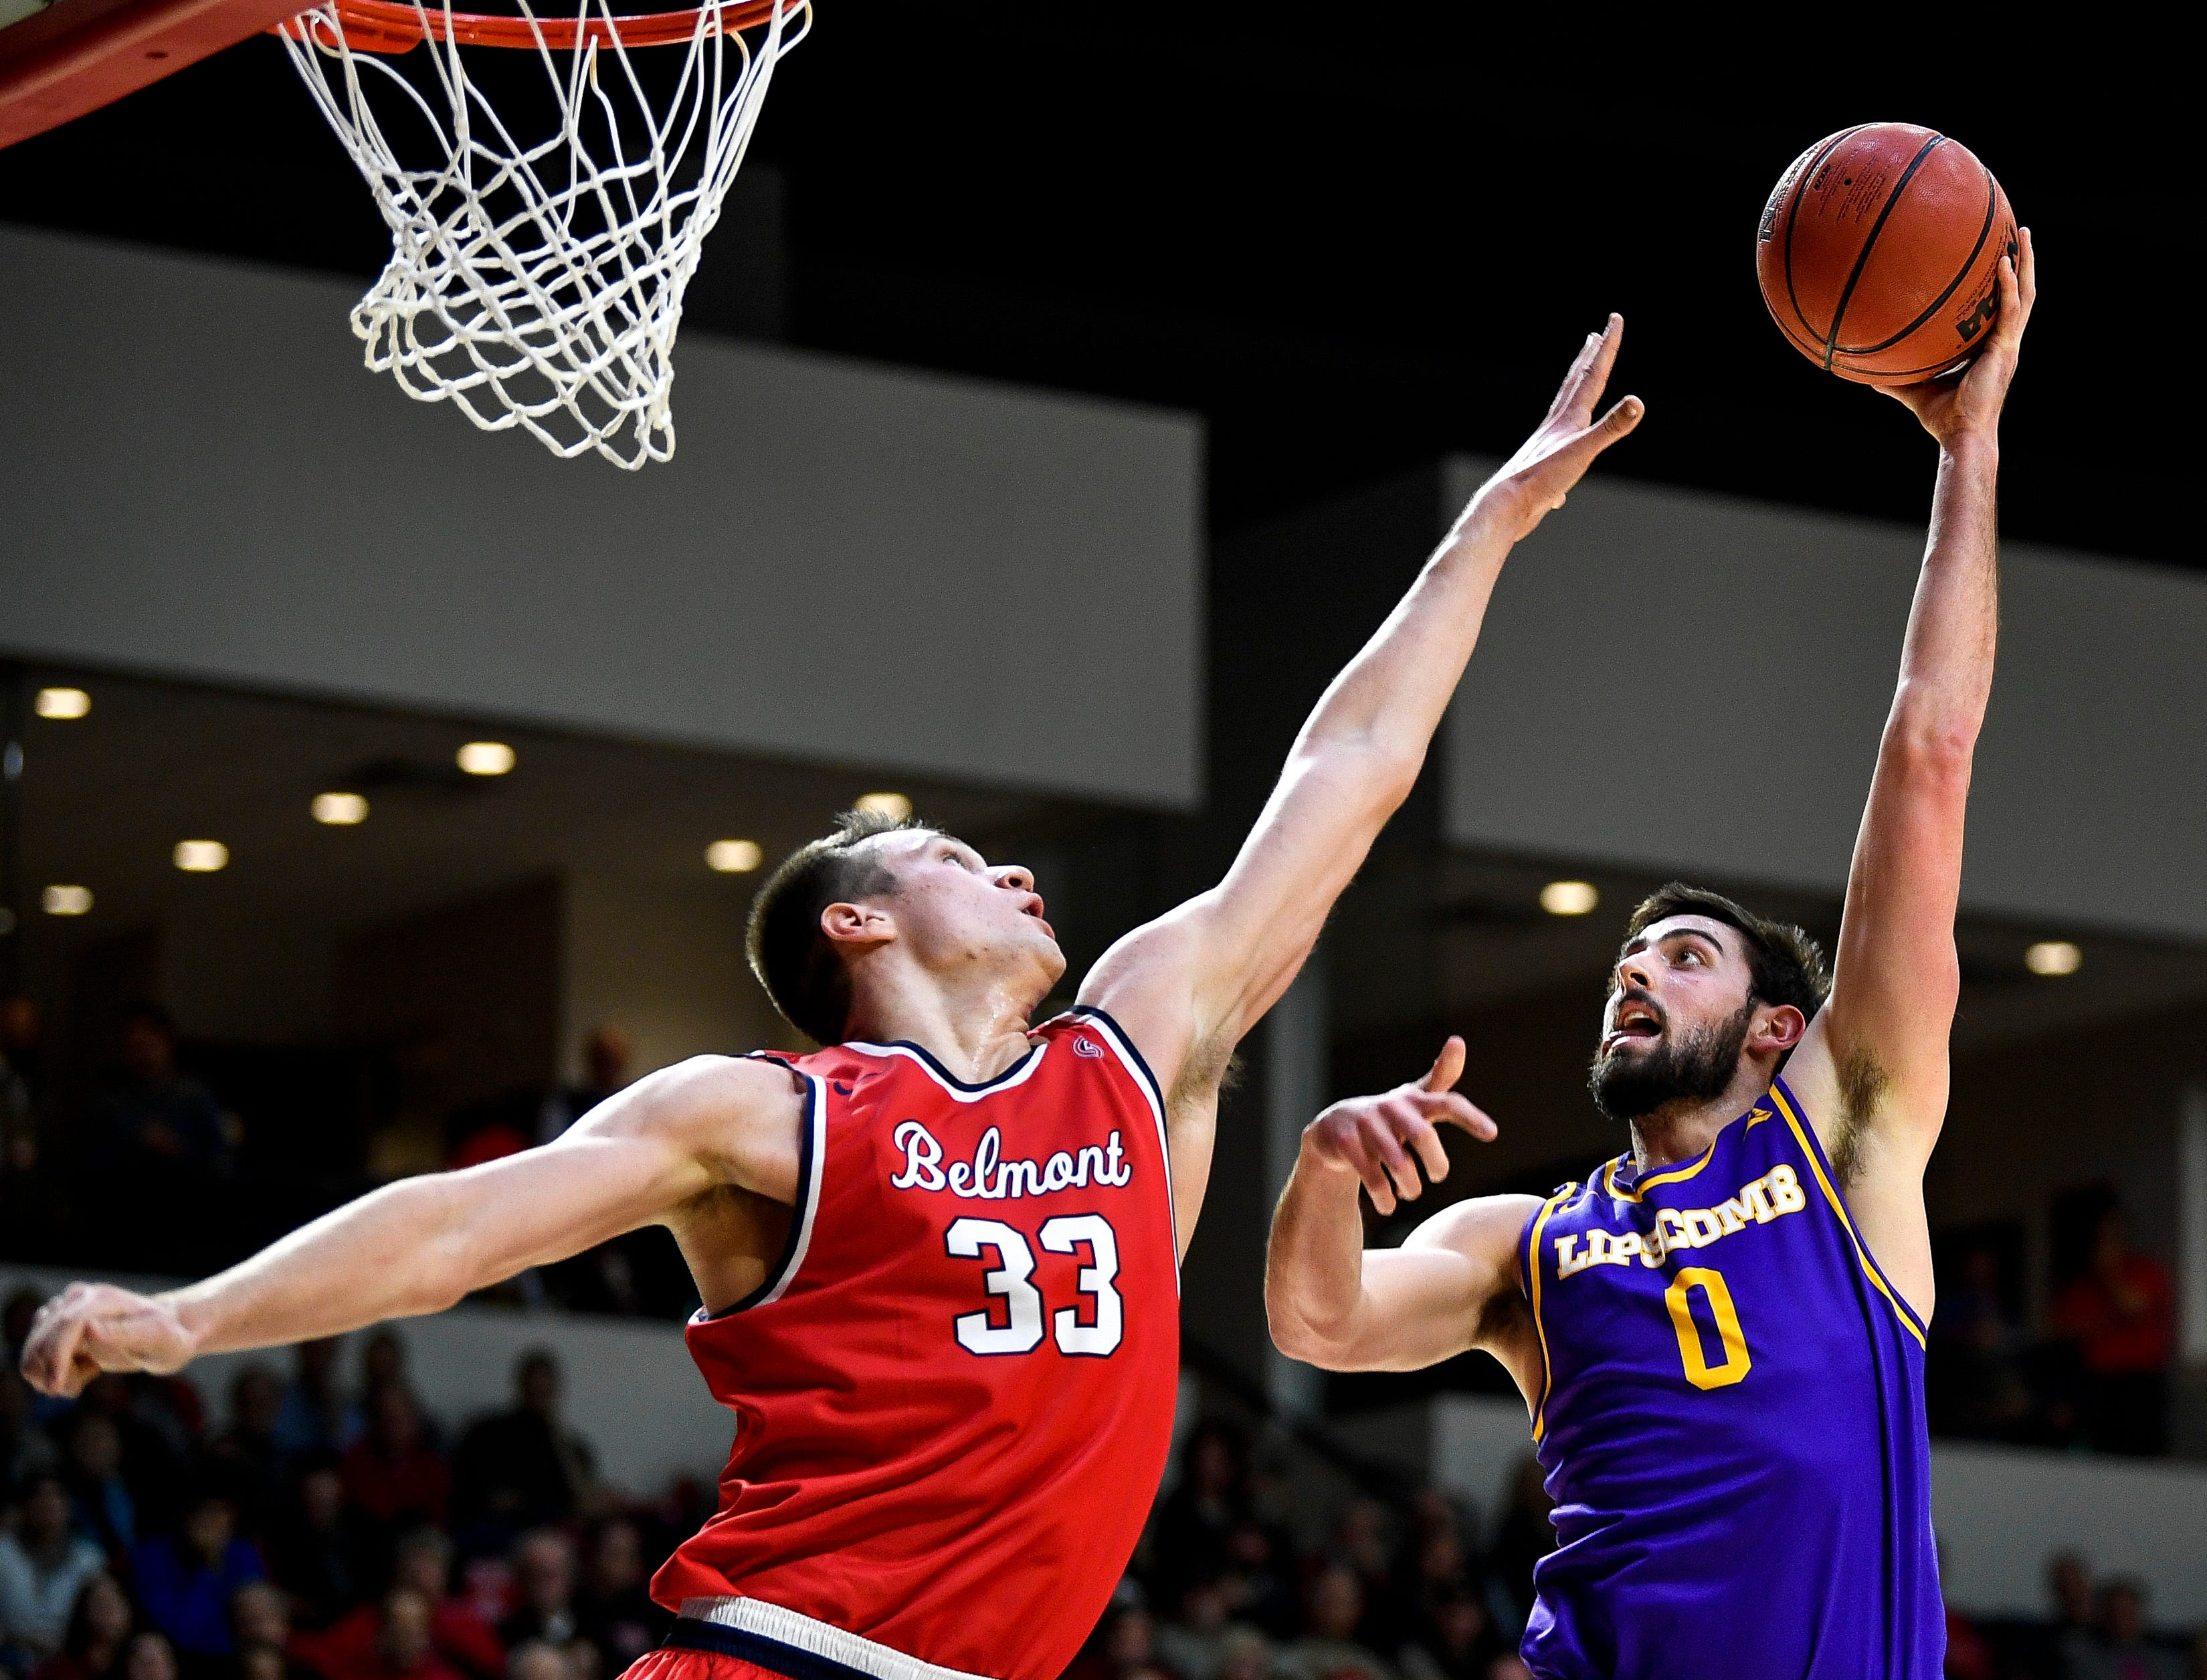 Belmont center Nick Muszynski (33) defends against Lipscomb forward Rob Marberry (0) during the second half at the Curb Event Center in Nashville, Tenn., Tuesday, Dec. 4, 2018.